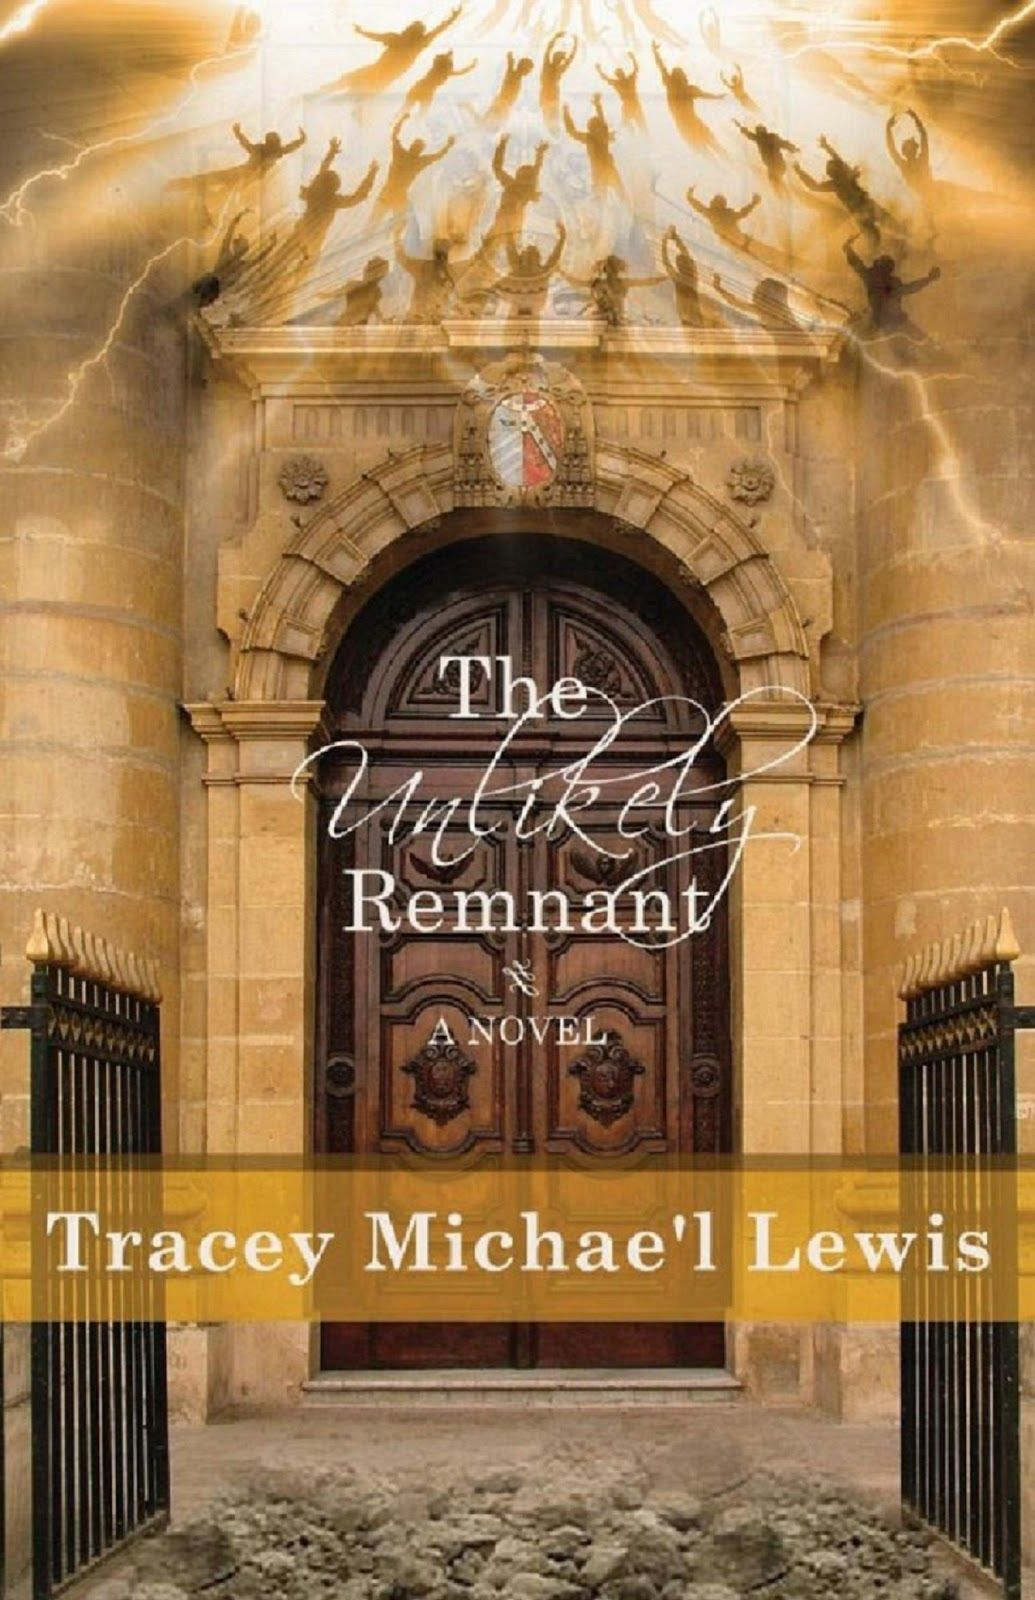 The Unlikely Remnant